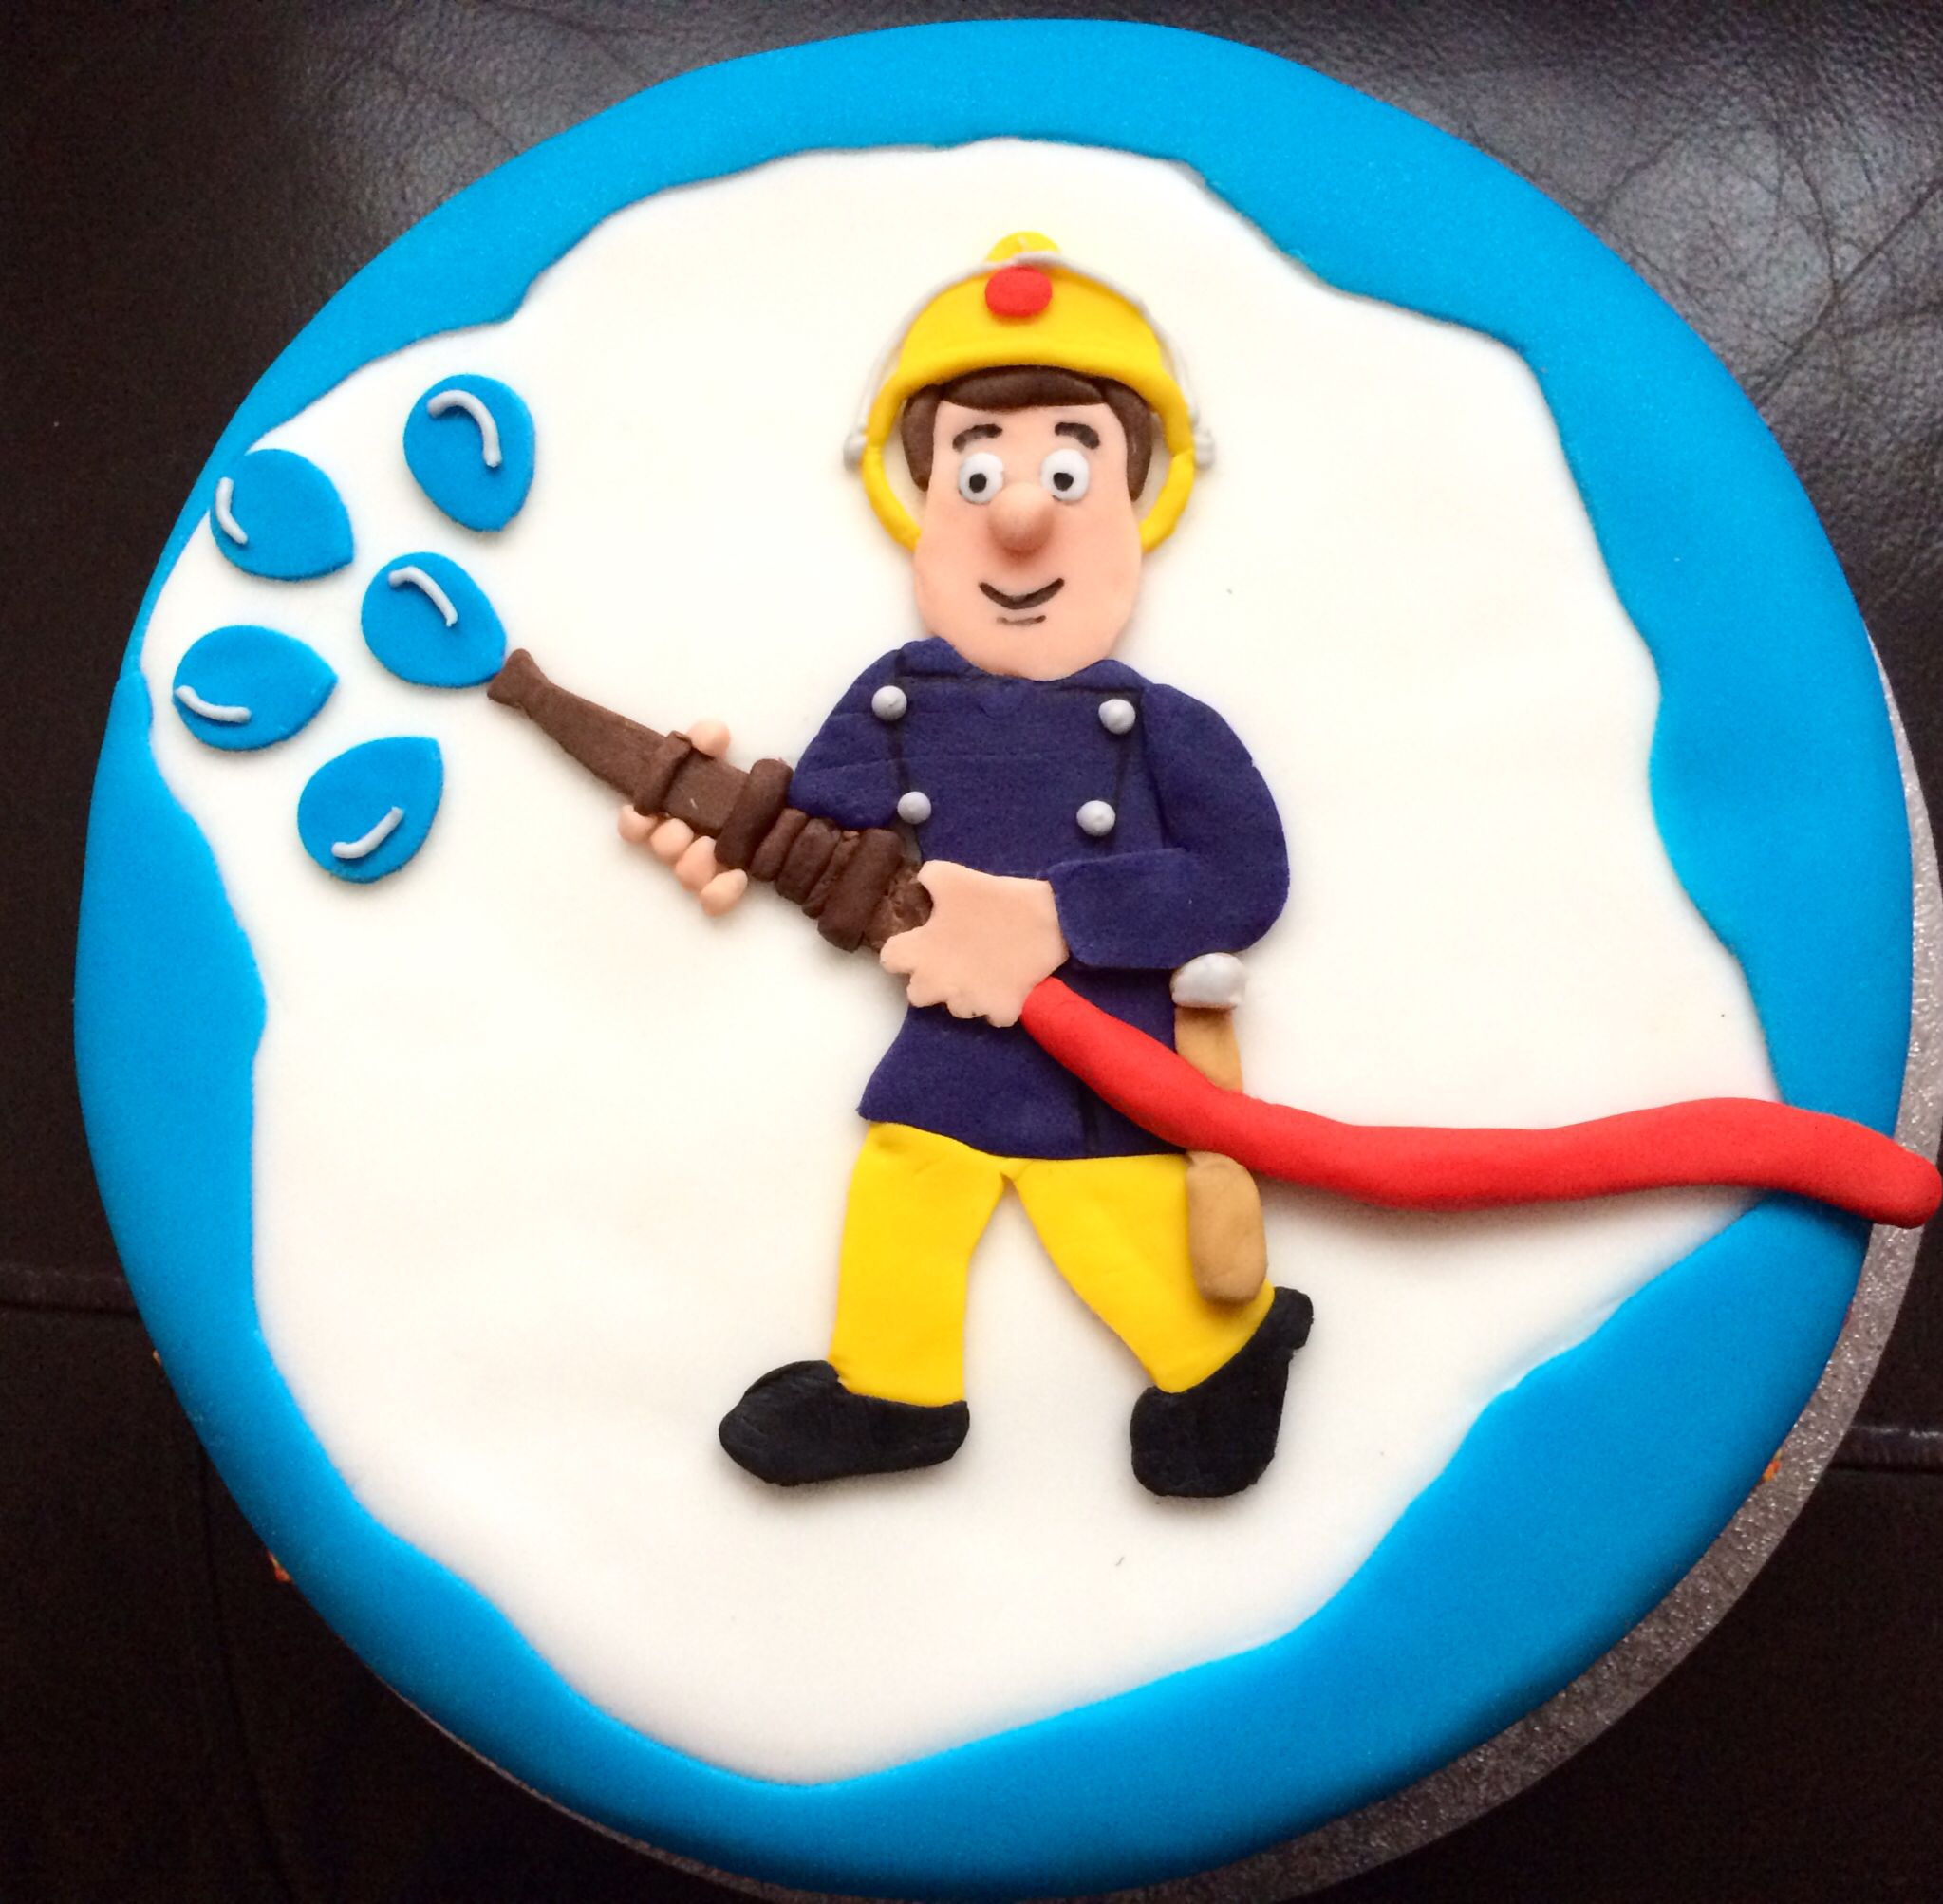 birthday cake images download fireman sam cake august fireman sam cake 1761